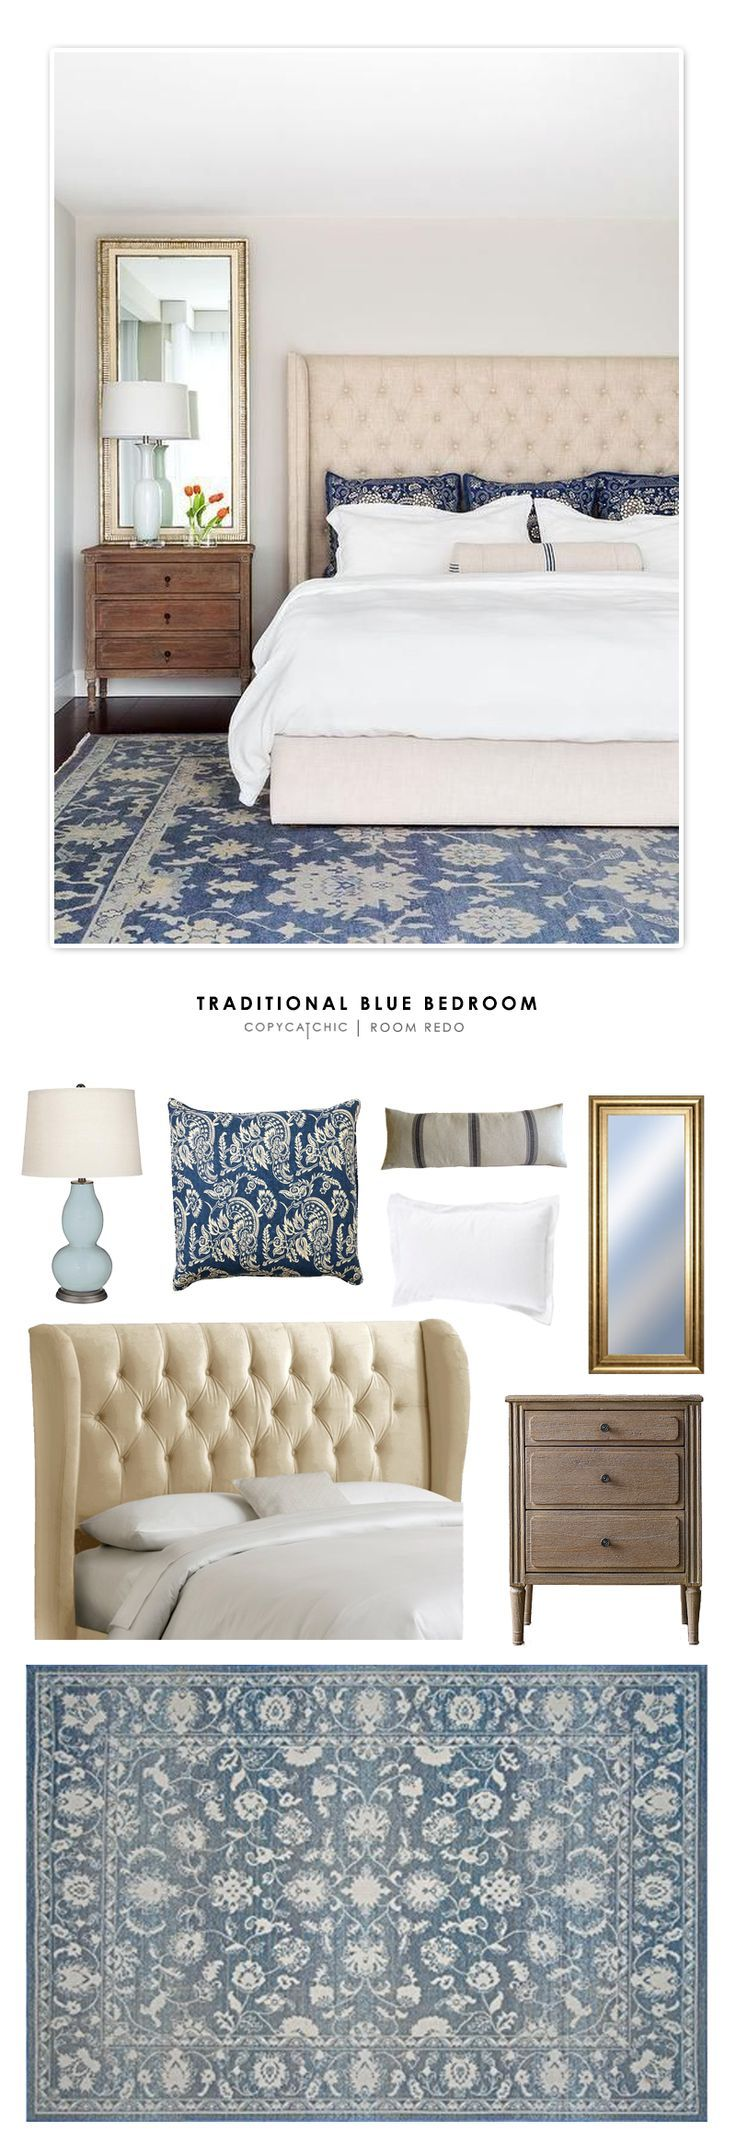 Tr traditional bedroom designs for couples - Copy Cat Chic Room Redo Blue Traditional Bedroom